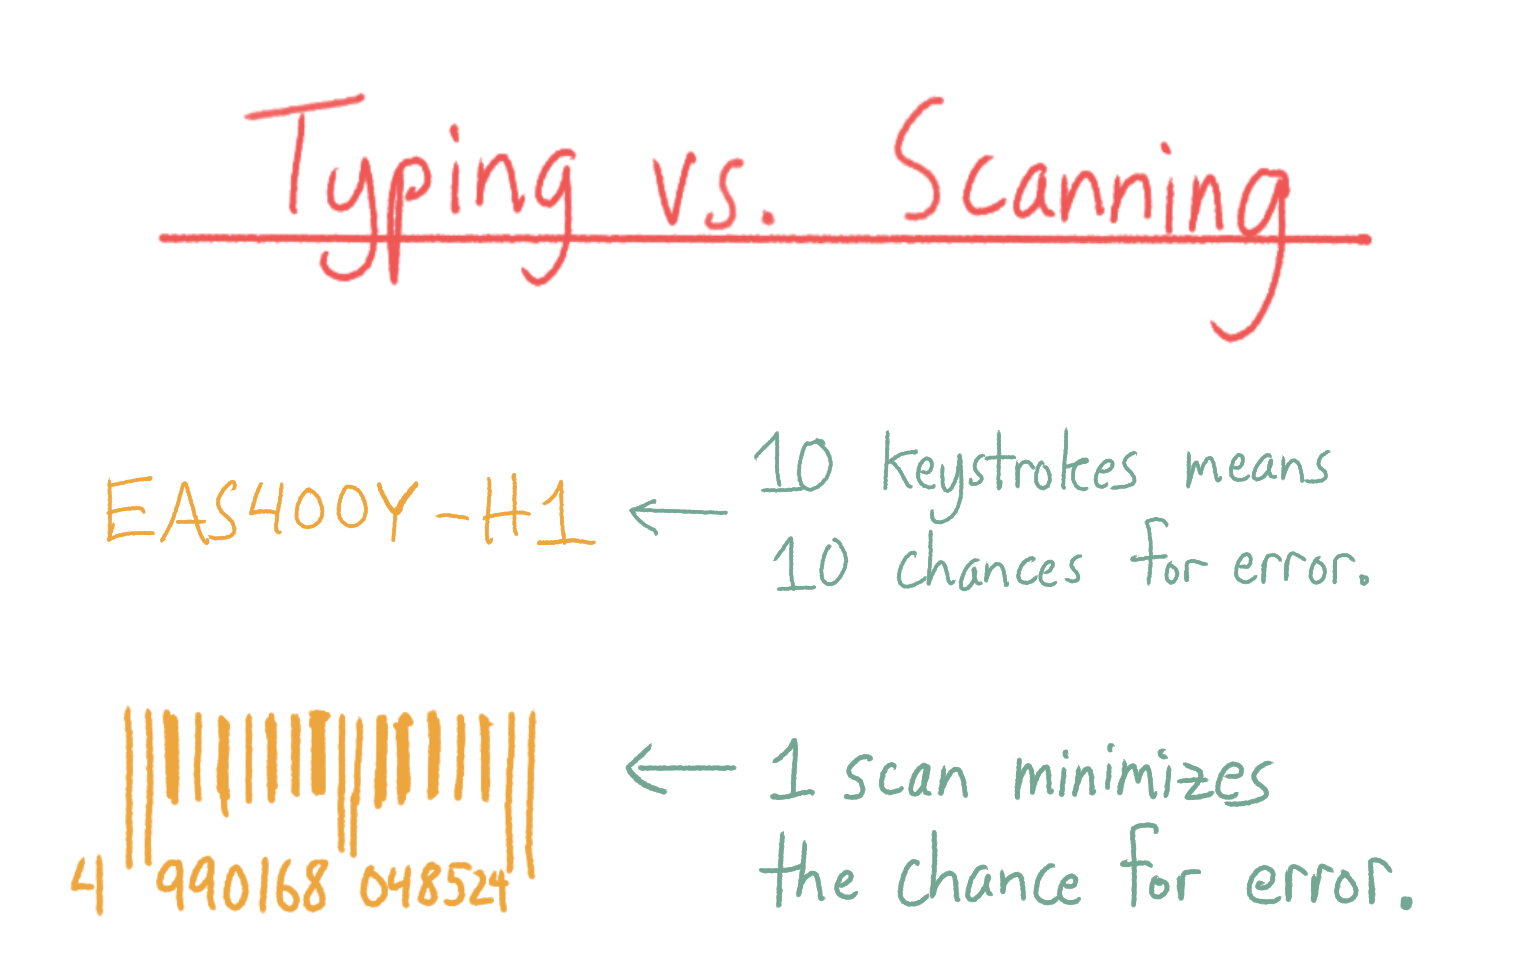 Inventory control: typing vs scanning. 10 keystrokes means 10 chances for error, while 1 scan minimizes the chance for errors.